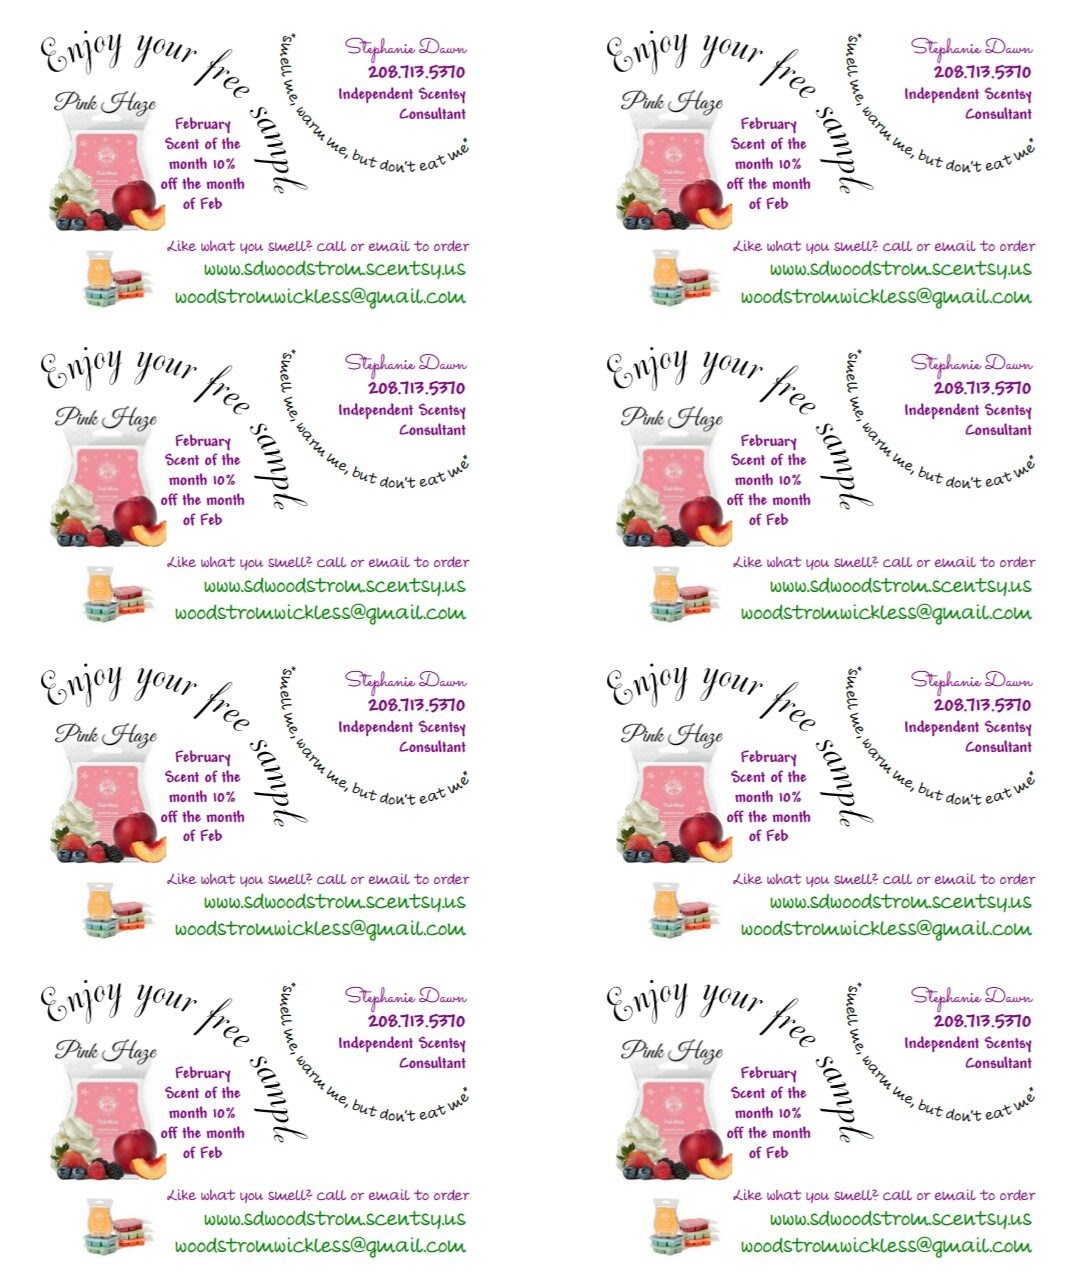 Scentsy Marketing Templates to Grow Your Direct Sales Business